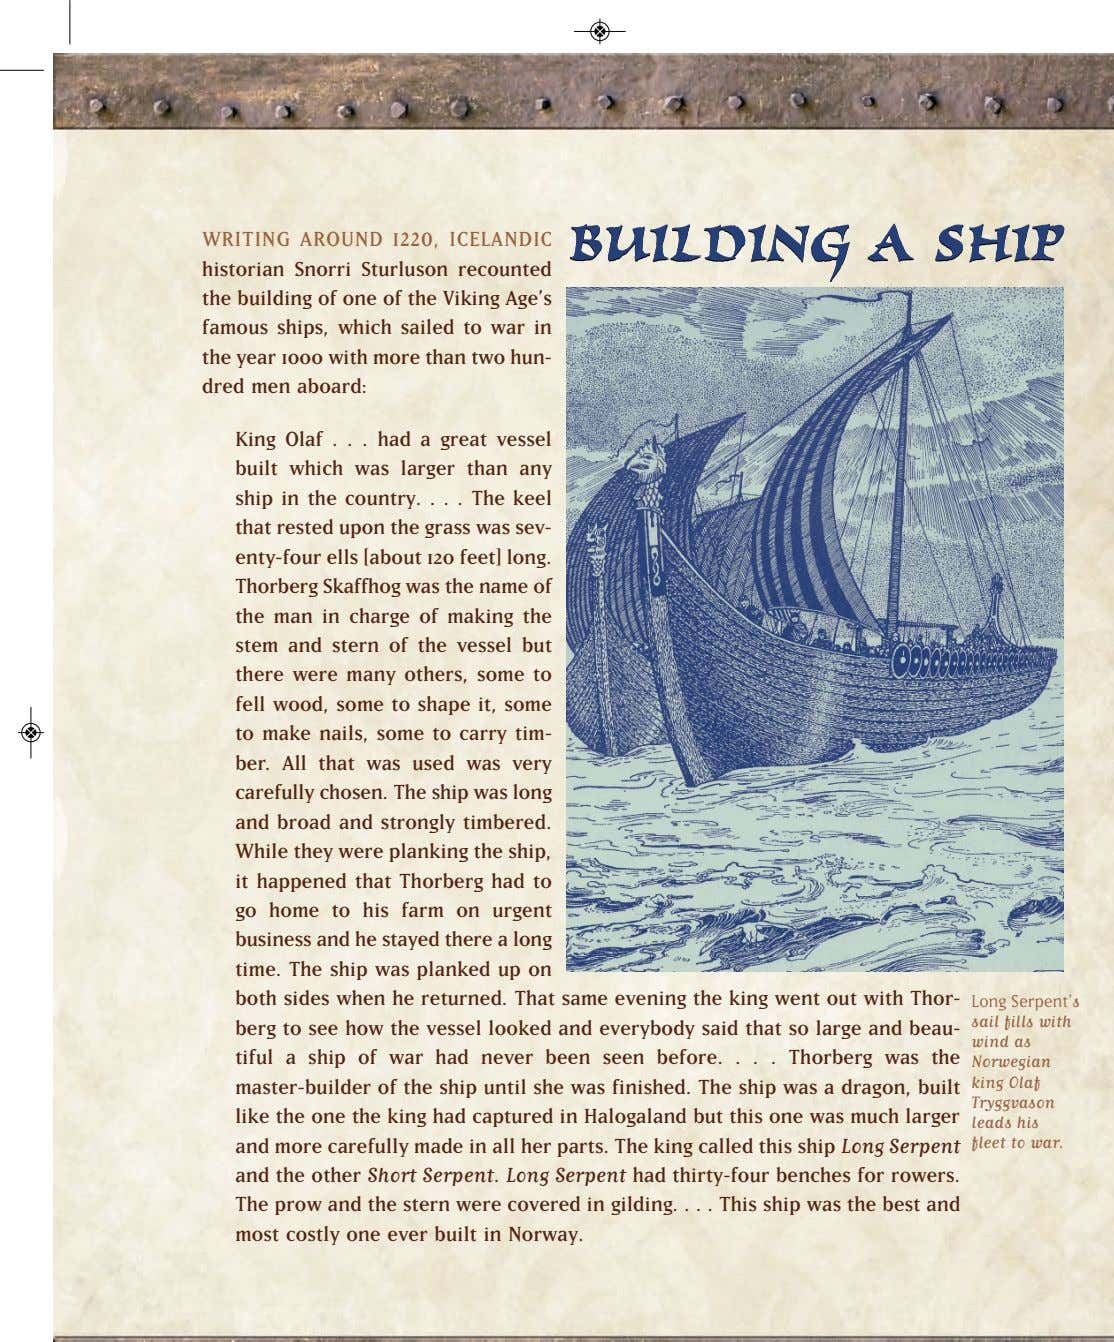 BUILDINGBUILDING AA SHIPSHIP WRITING AROUND 1220, ICELANDIC historian Snorri Sturluson recounted the building of one